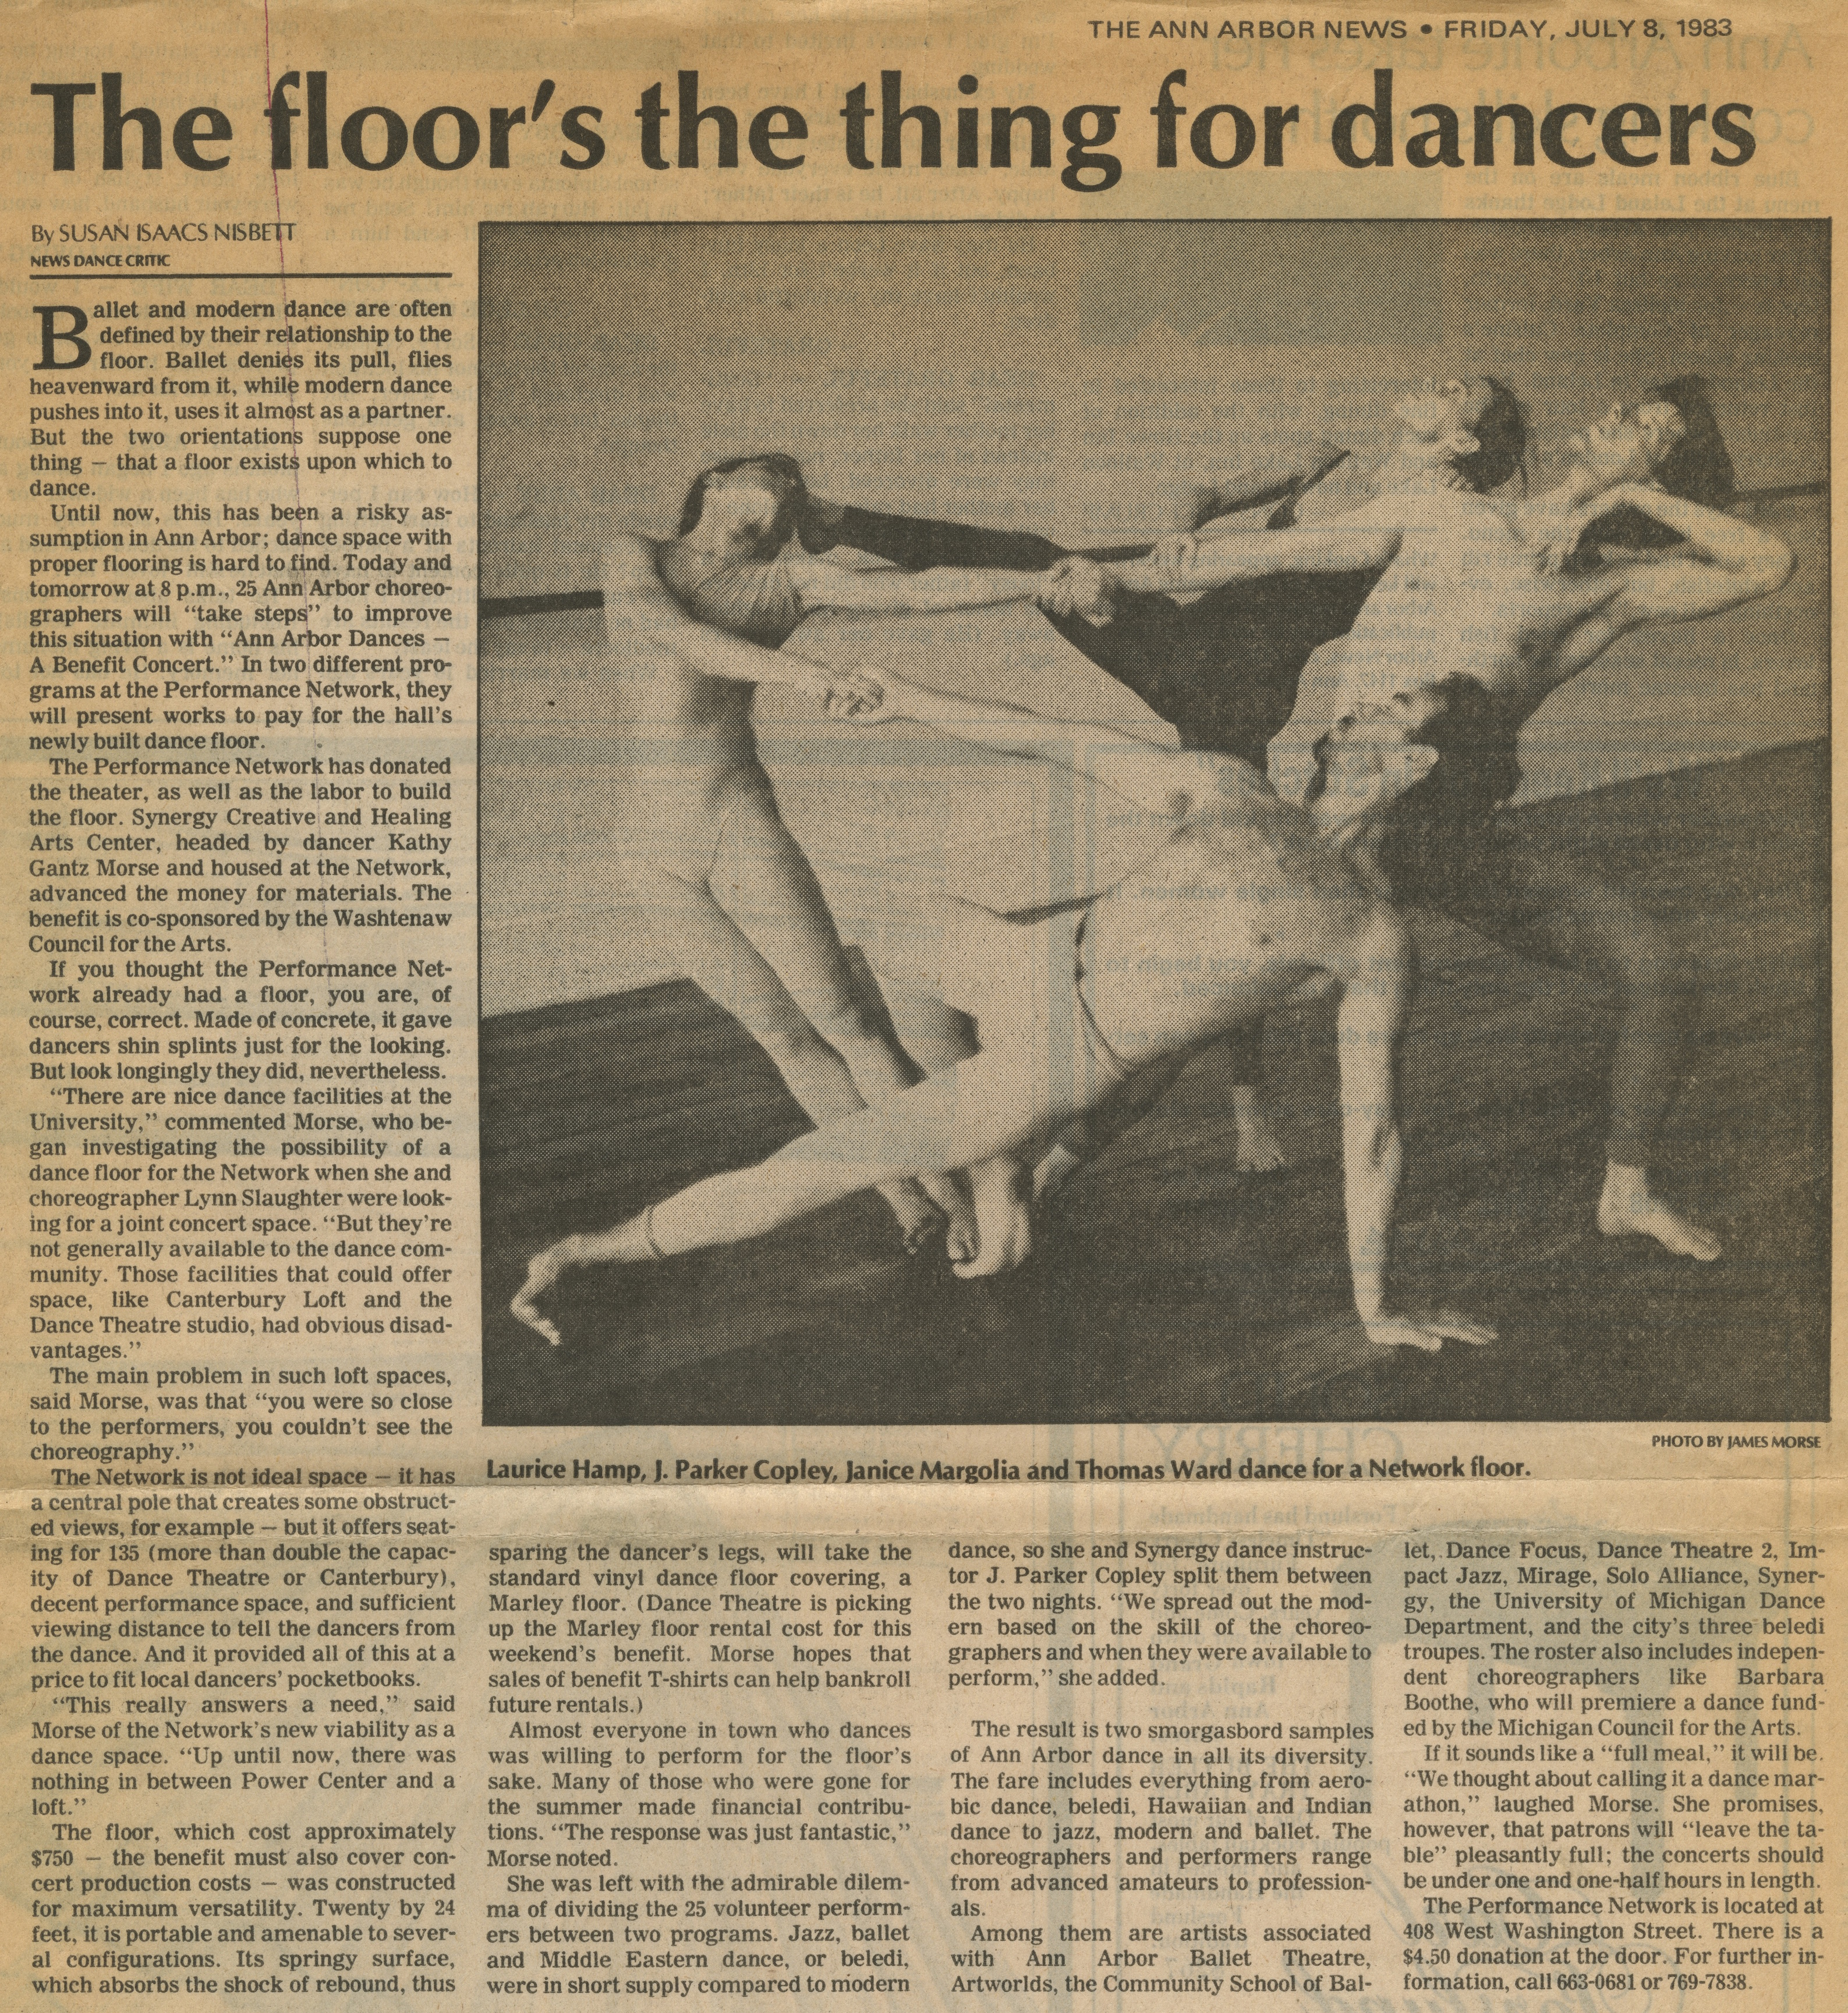 The floor's the thing for dancers image